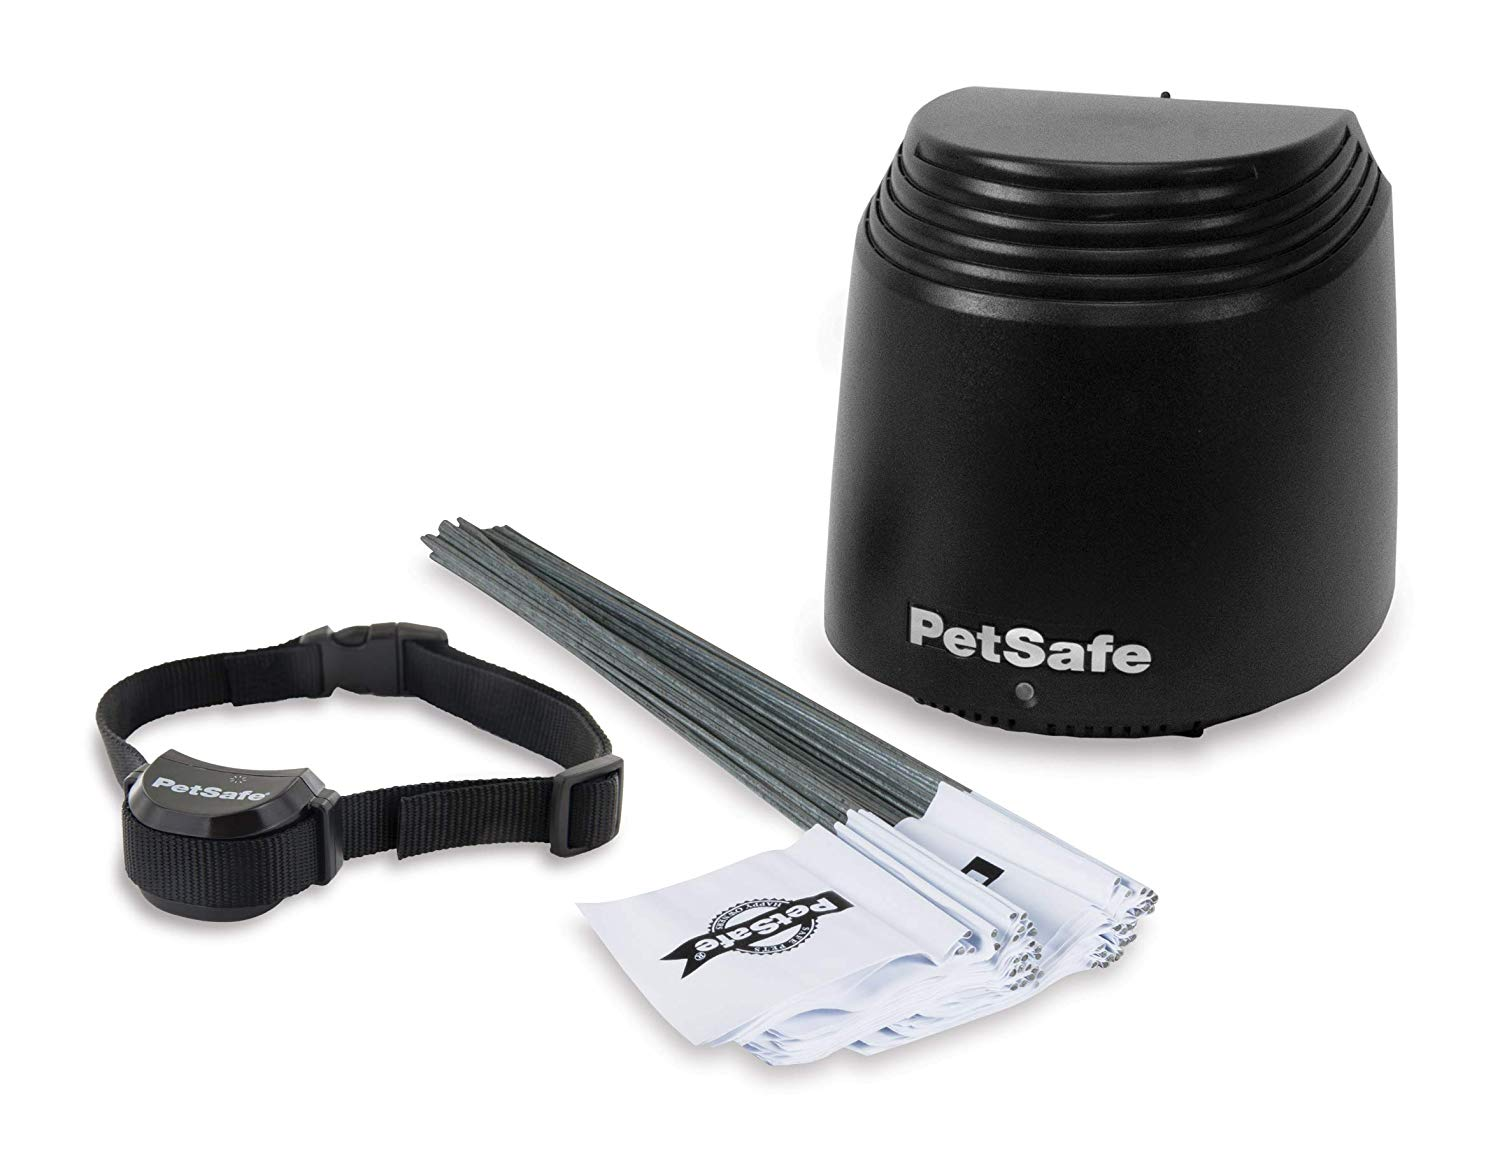 #1 PetSafe Stay and Play Wireless Dog Fence